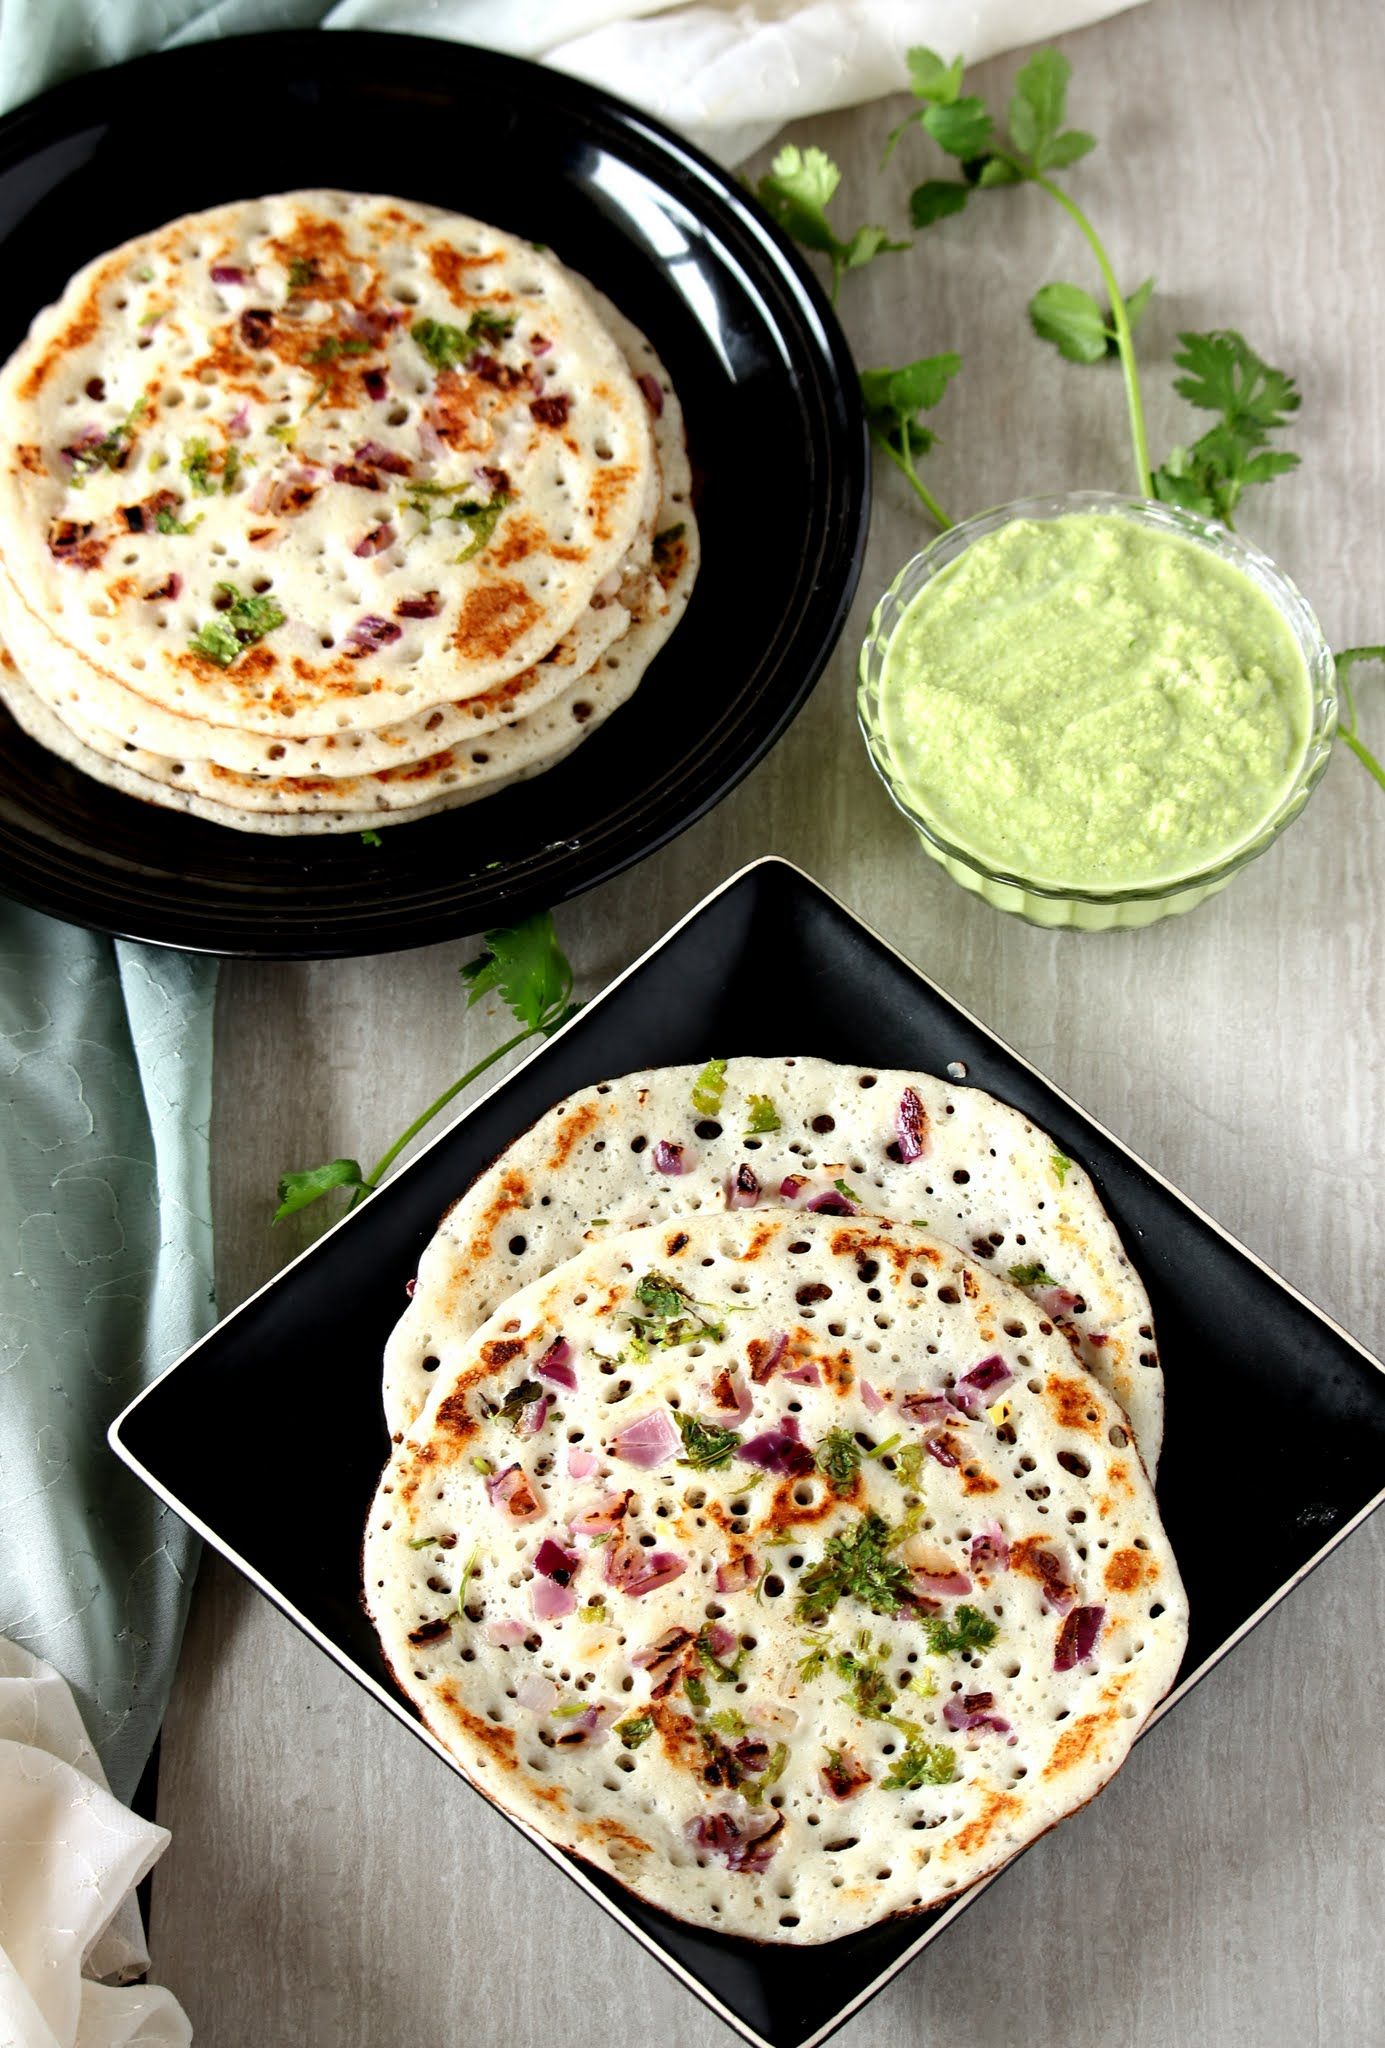 O for oothappam onion oothappam onion uthappam onions south o for oothappam onion oothappam onion uthappam my cooking journey south indian foodclean forumfinder Images